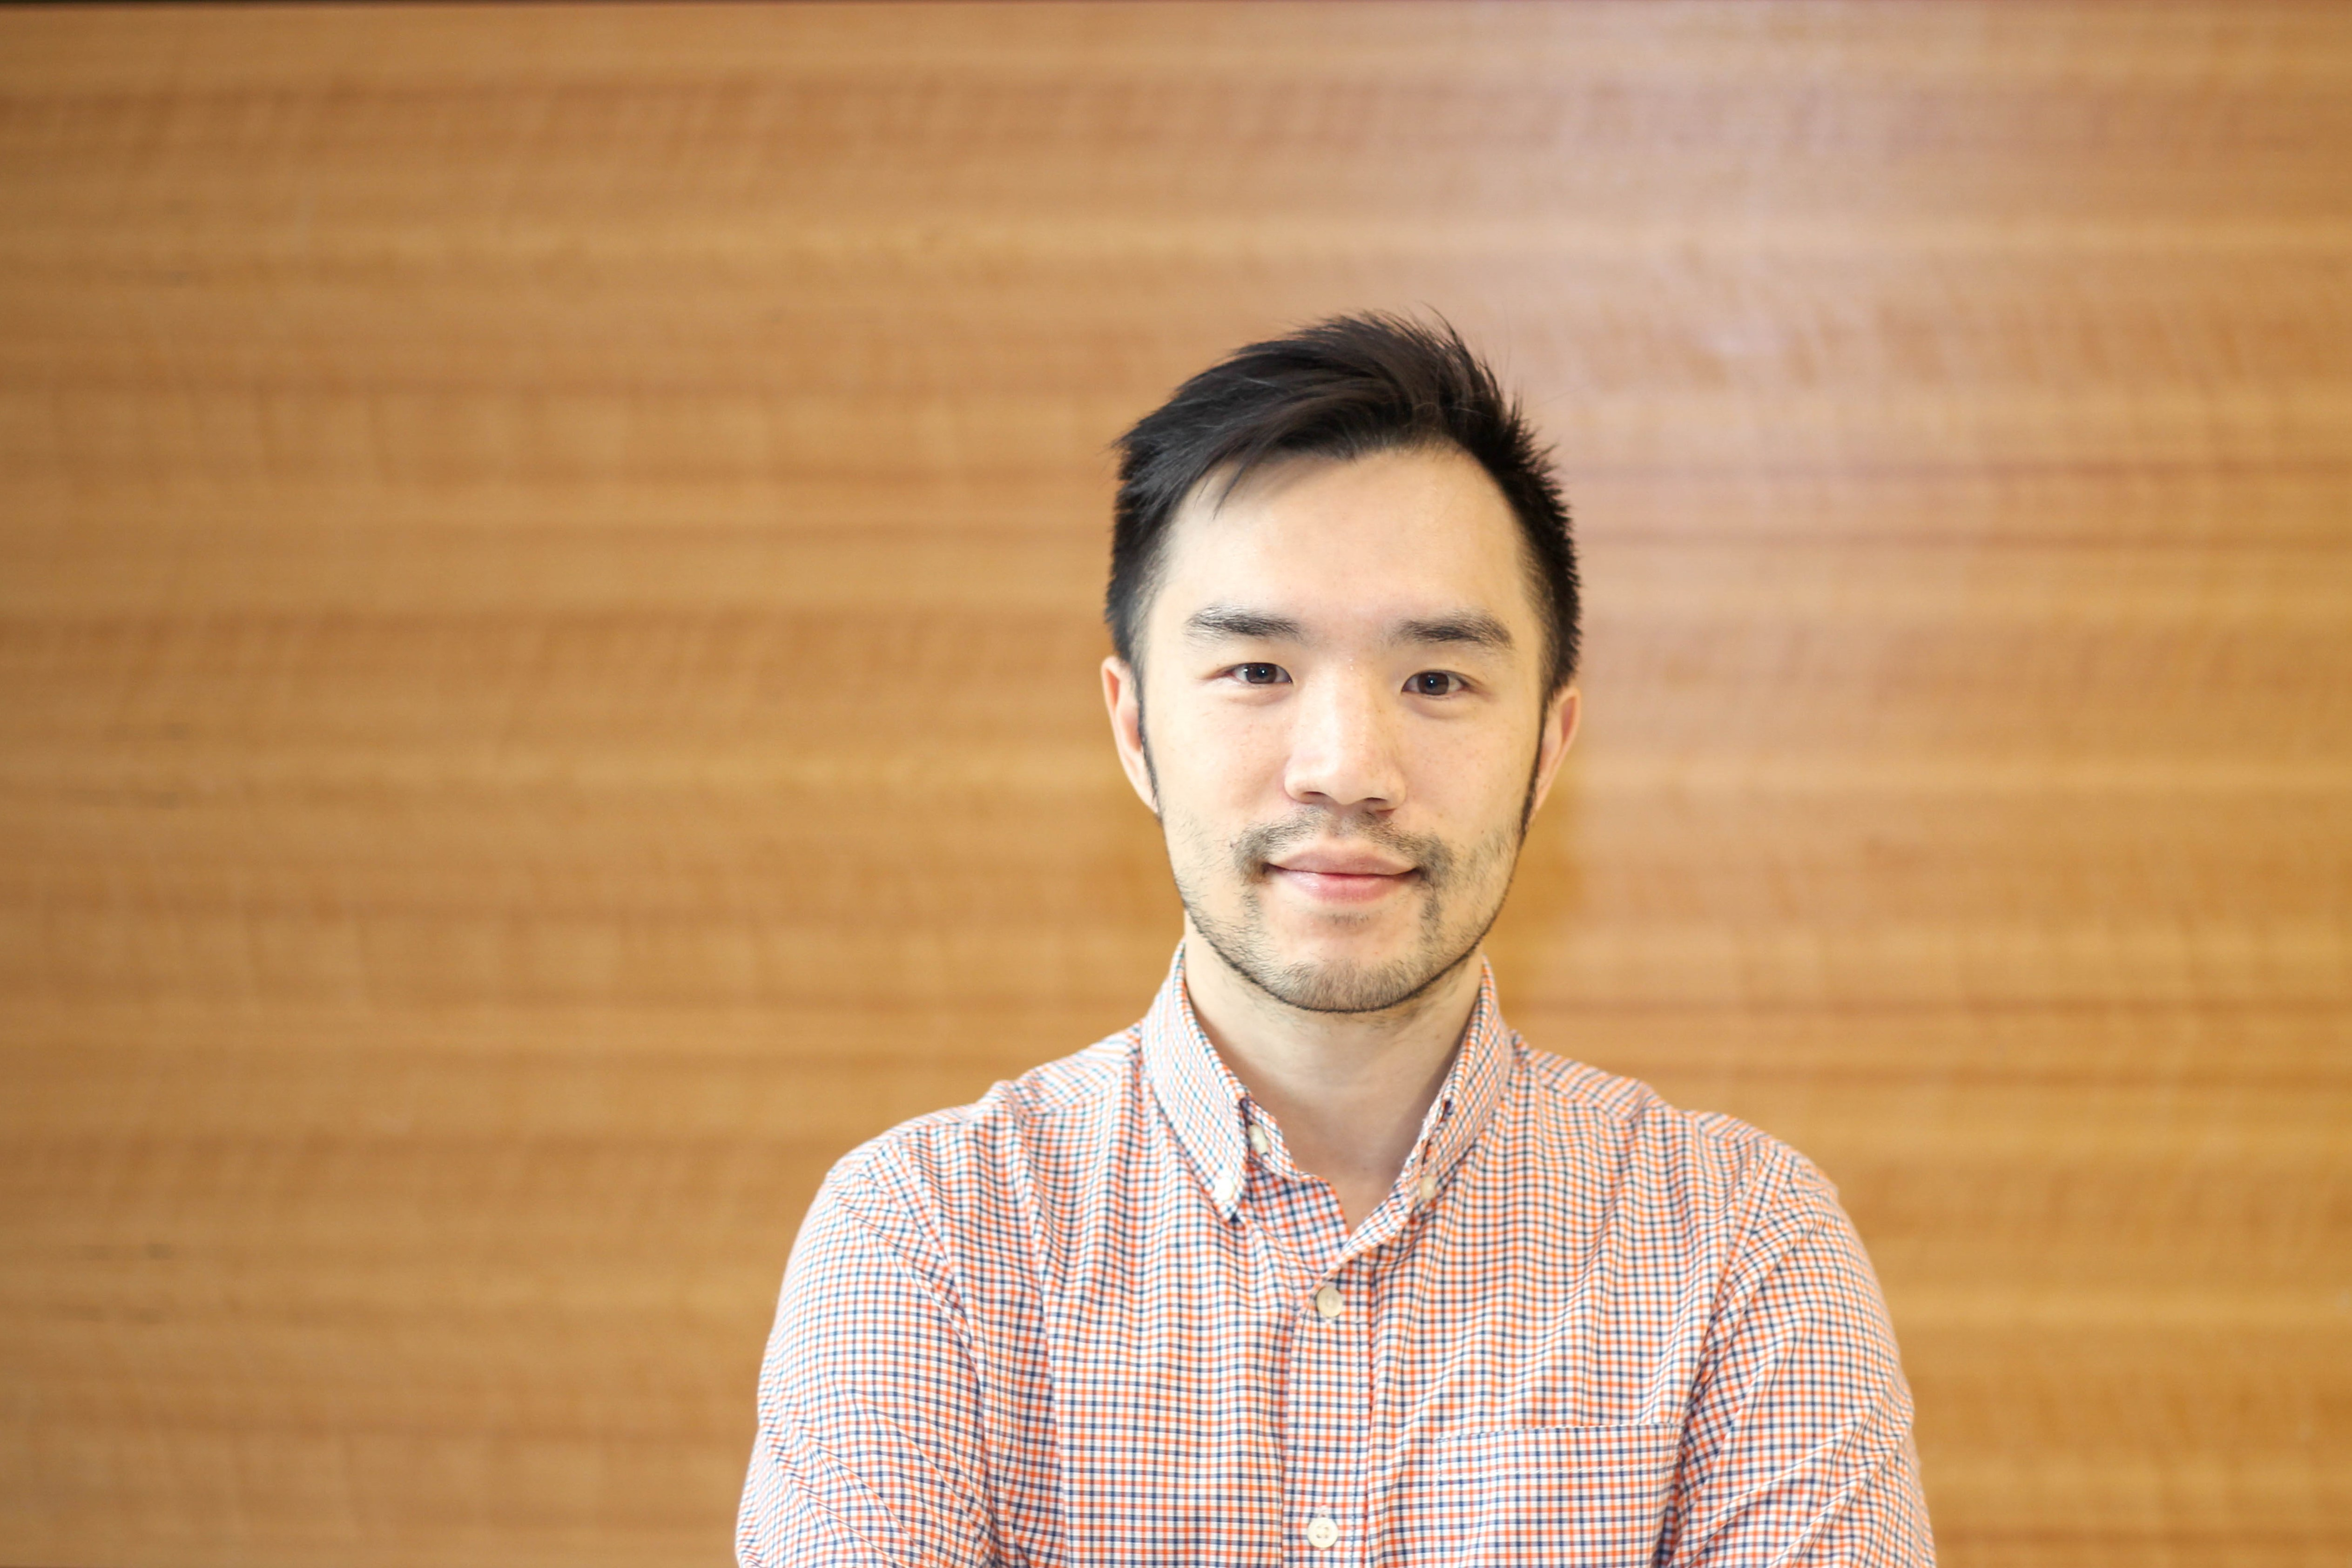 Dr. Leo Chou is an assistant professor at IBBME